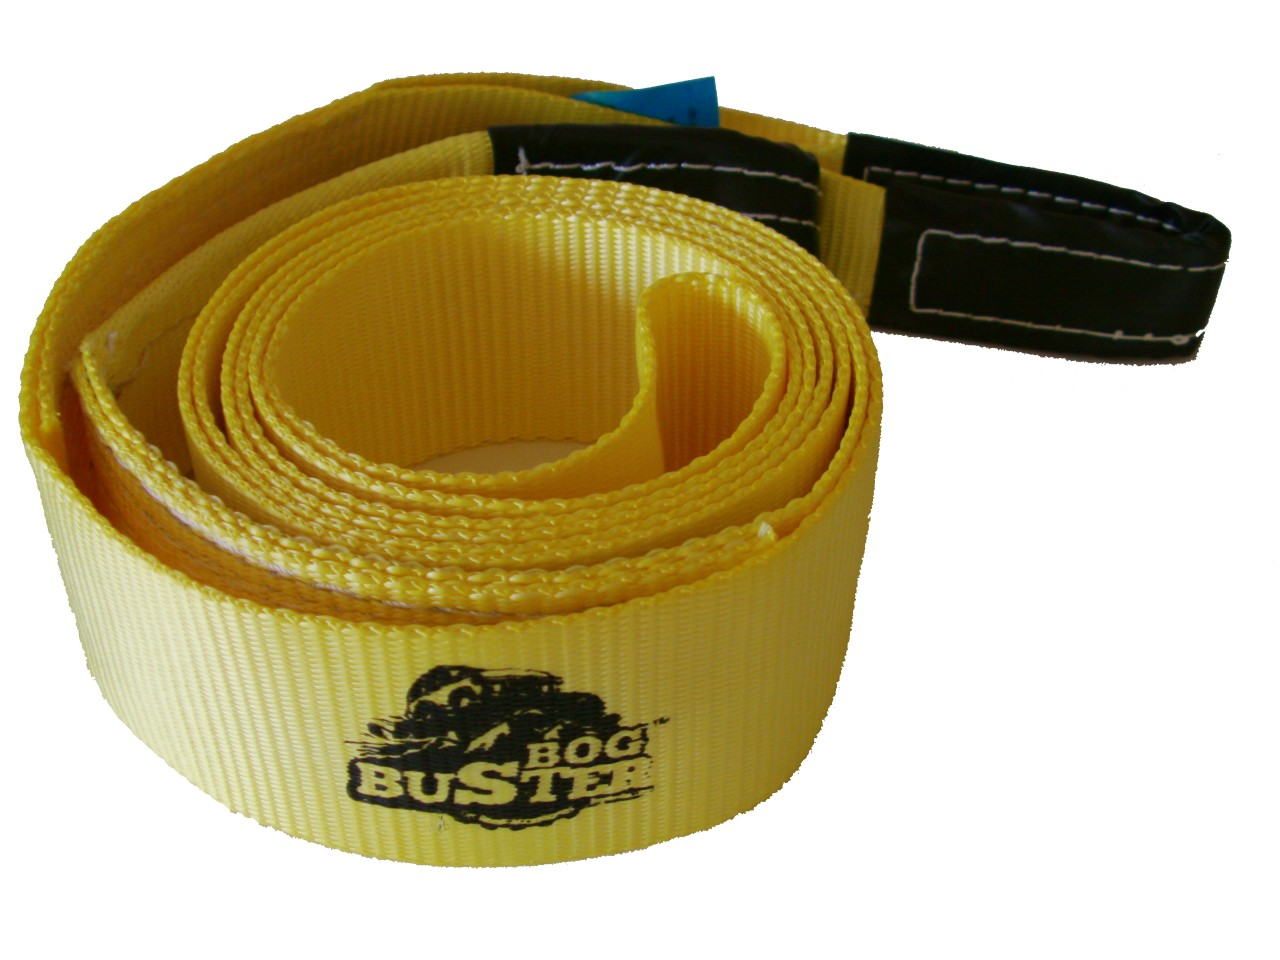 BOGBUSTER-TOW-STRAP-WINCH-EXTENSION-TREE-TRUNK-PROTECTOR-SNATCH-EQUALIZER-8T